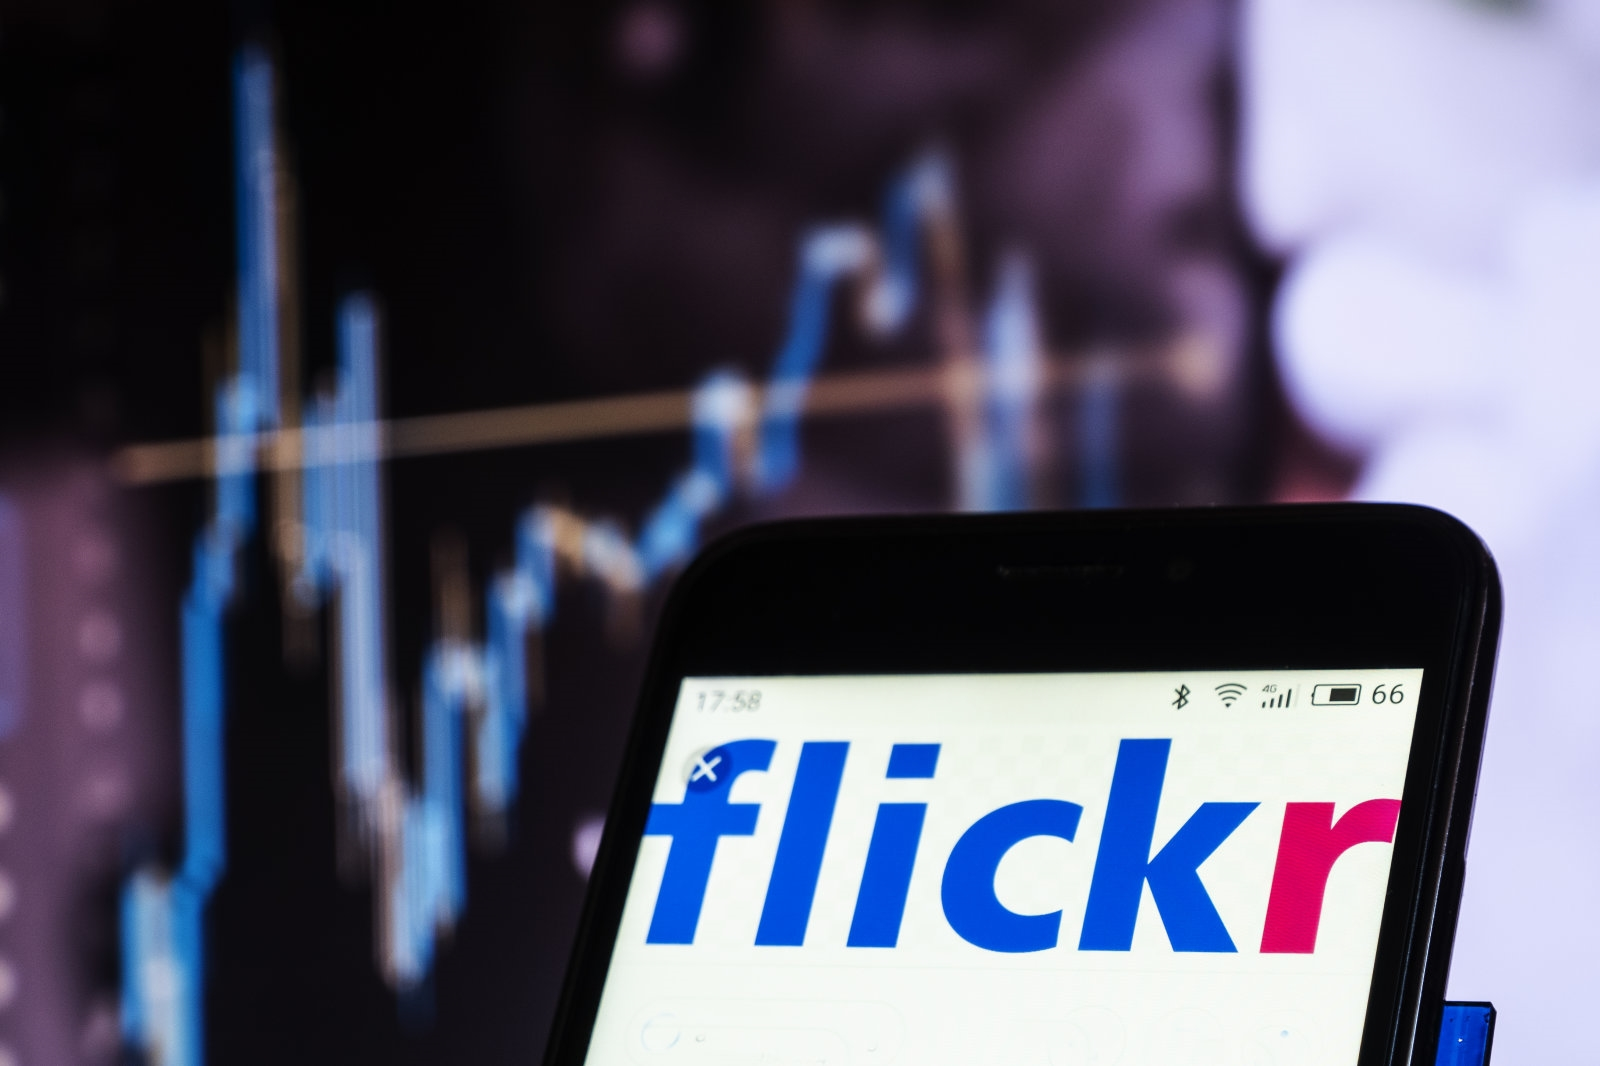 Flickr postpones photo deletions for free users to March 12th | DeviceDaily.com